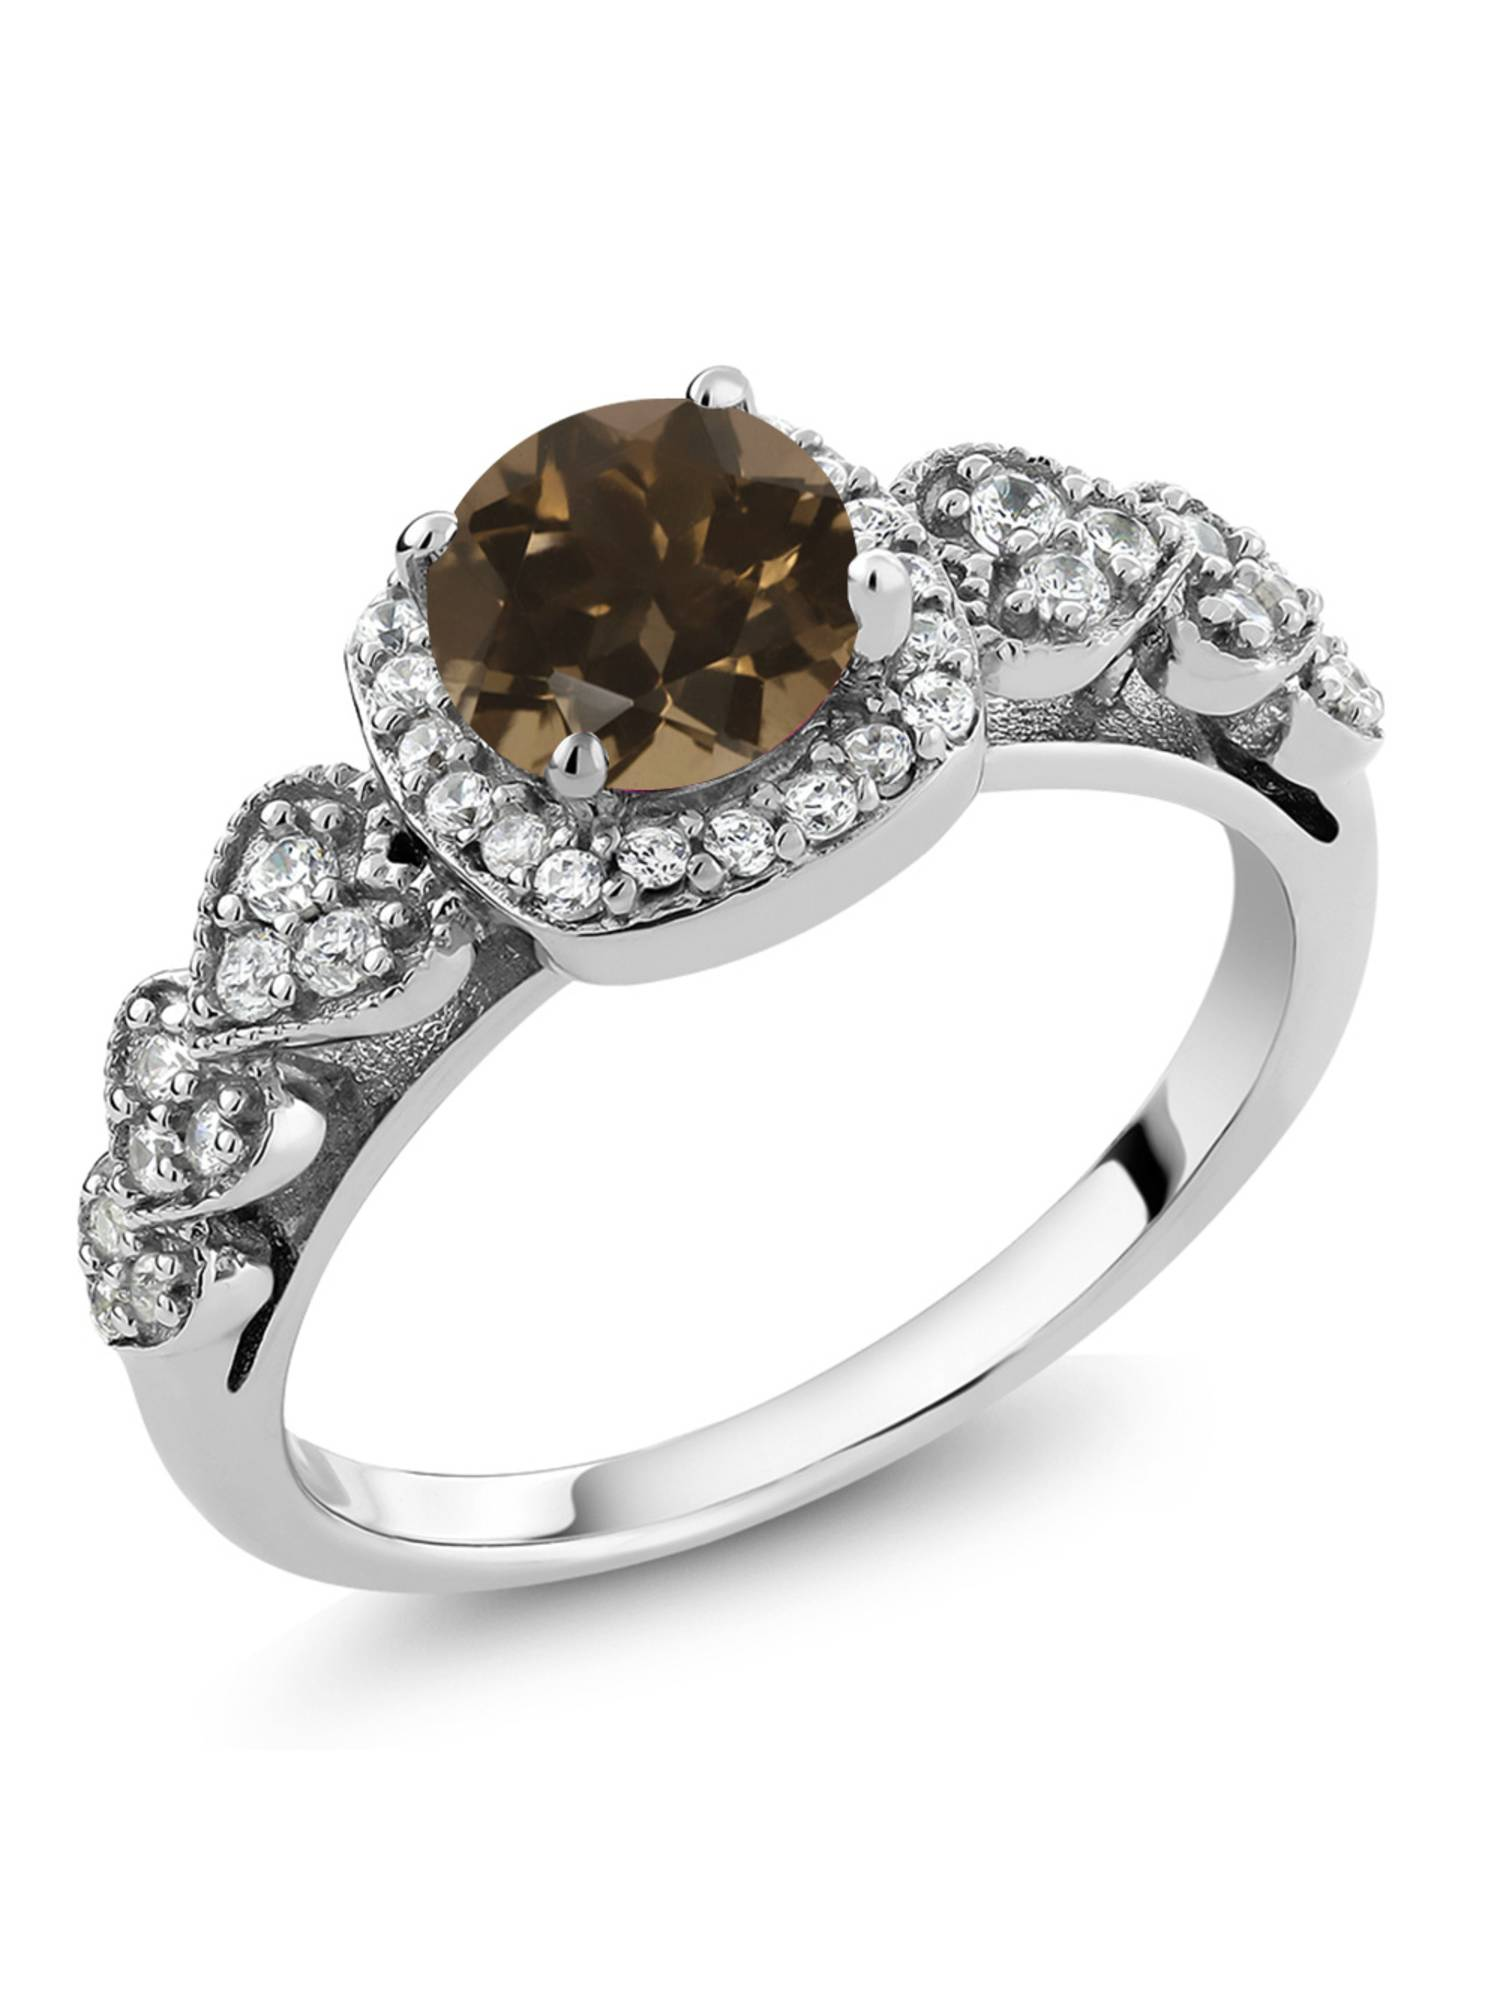 1.12 Ct Round Brown Smoky Quartz 925 Sterling Silver Ring